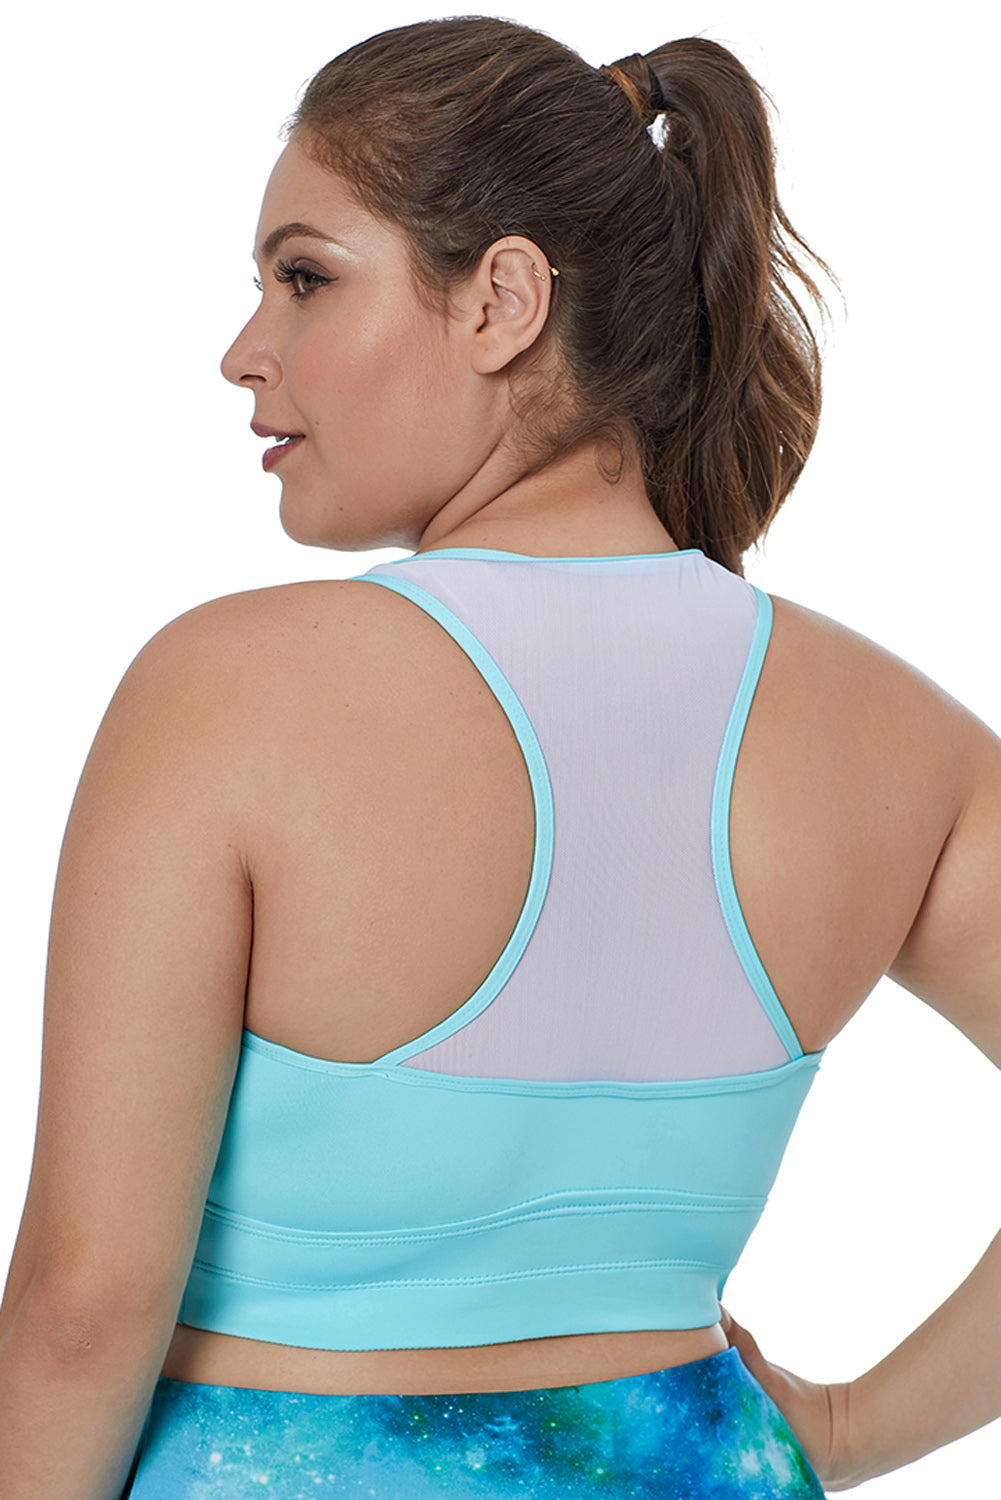 Light Blue Sleeveless Racerback Plus Size Yoga Bra